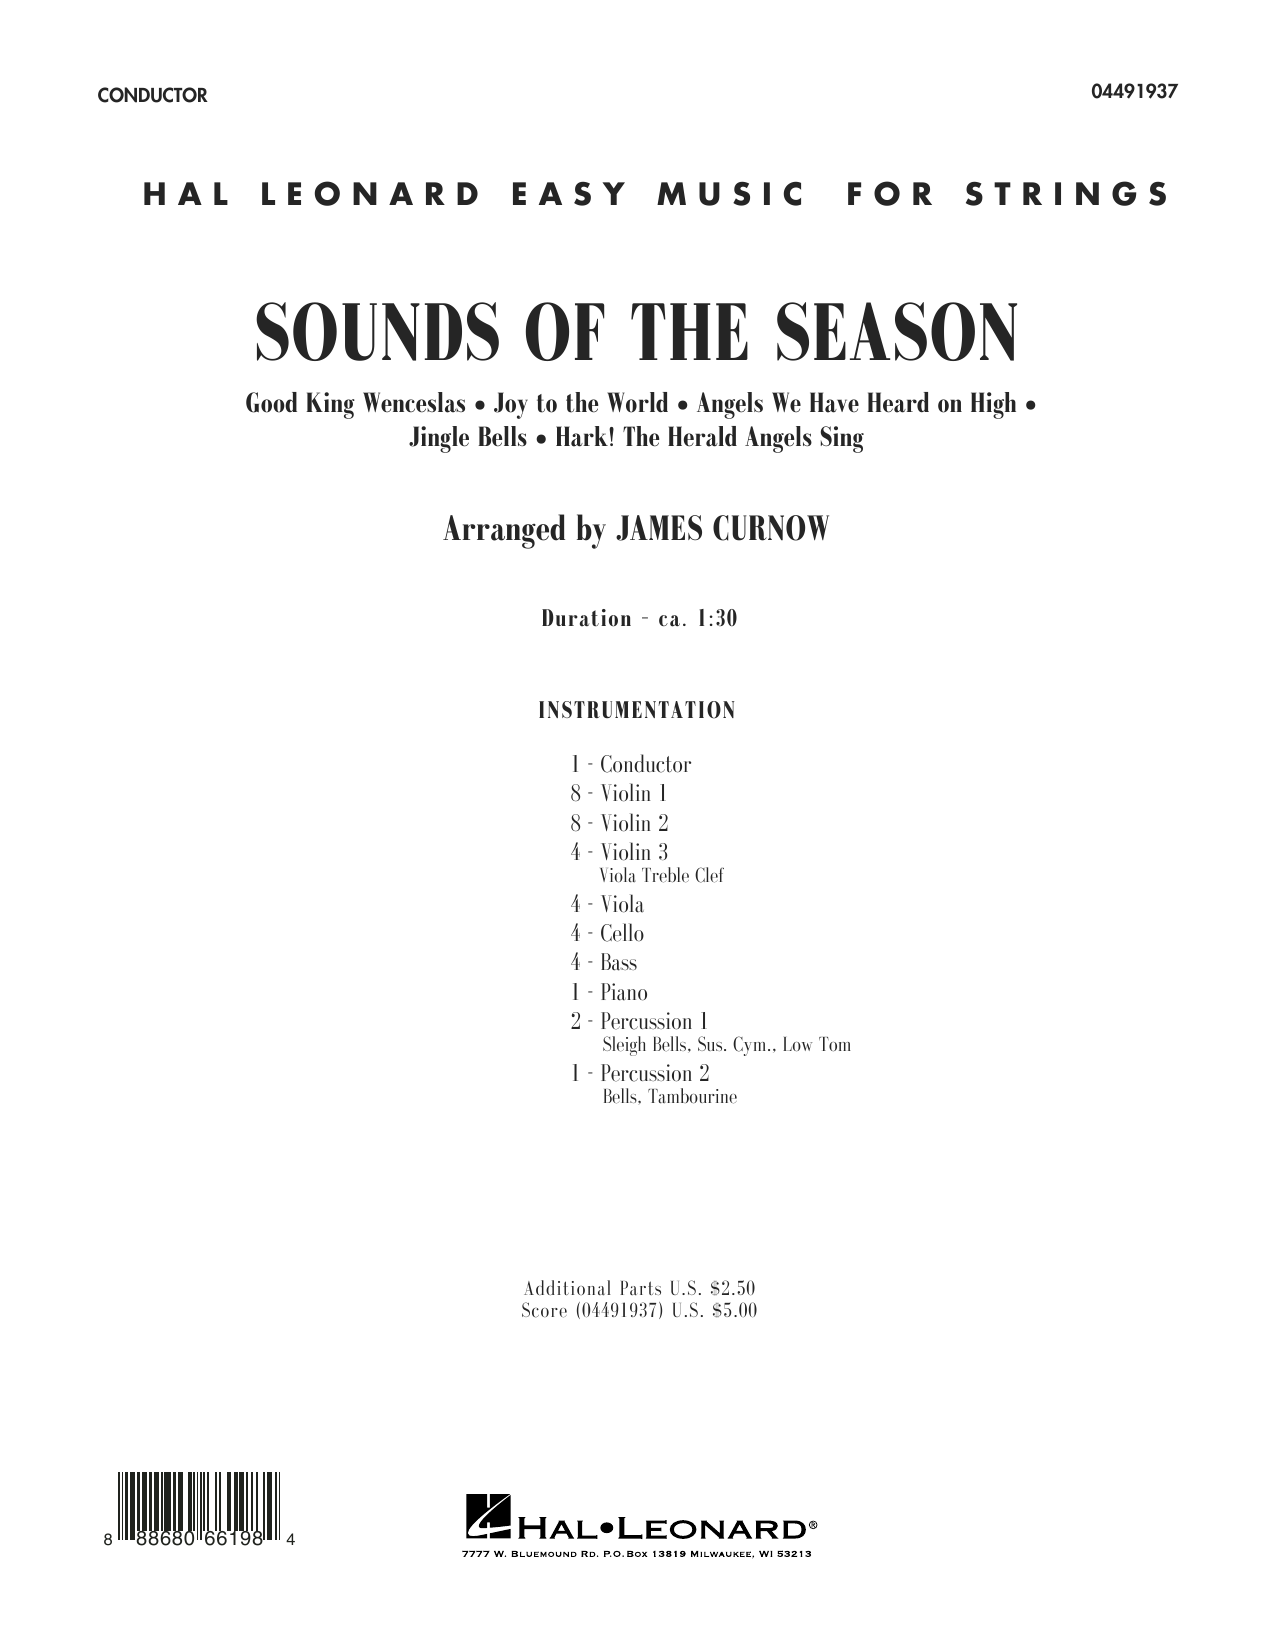 Sounds of the Season - Conductor Score (Full Score)